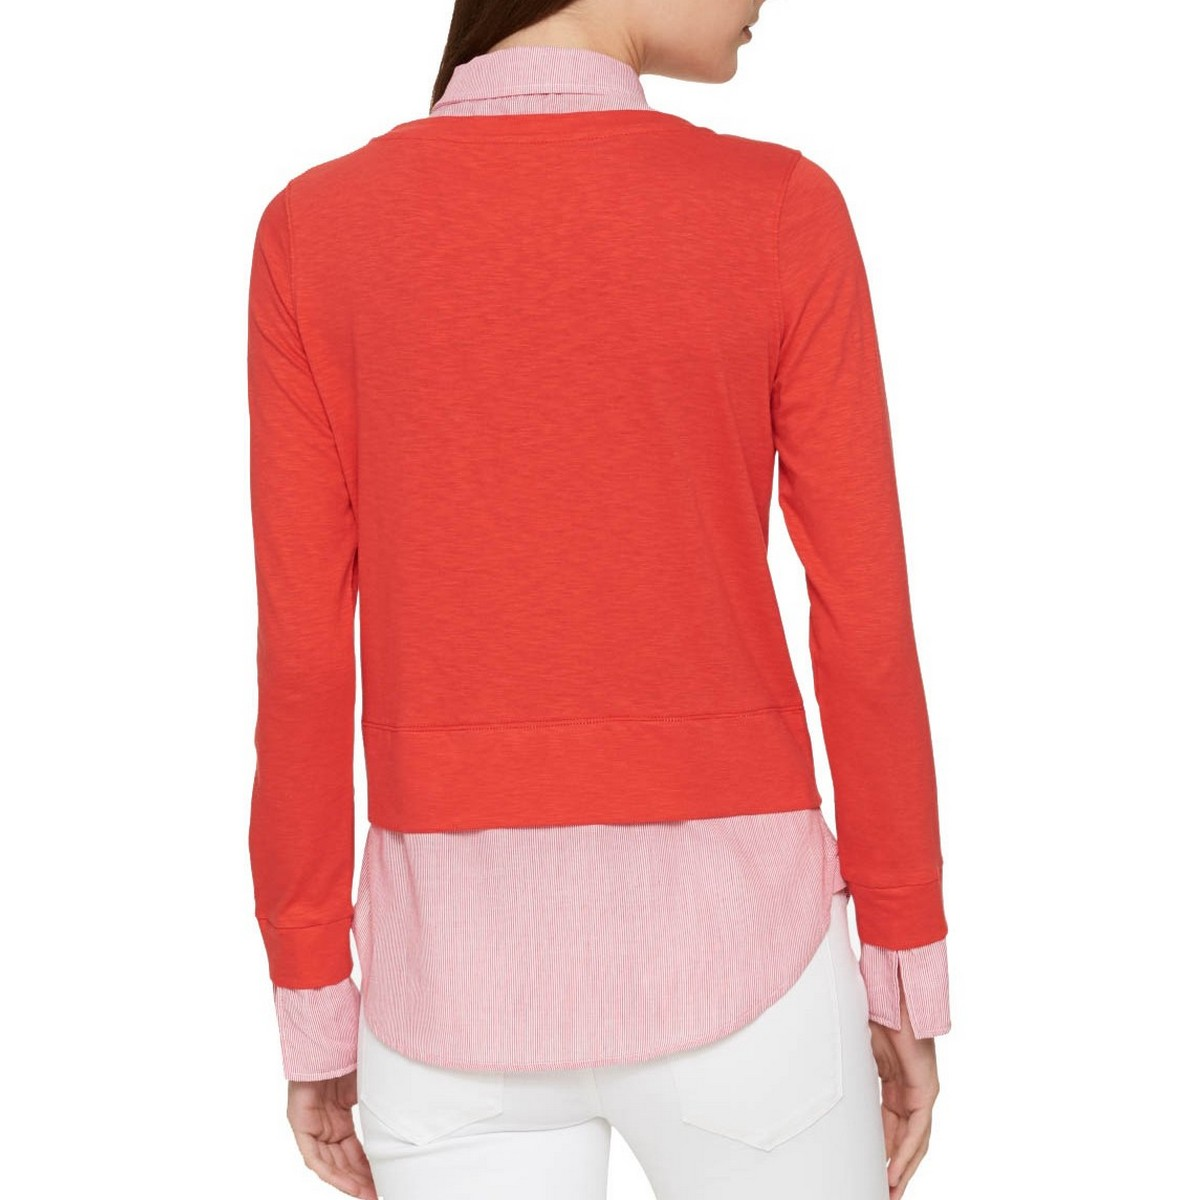 TOMMY-HILFIGER-NEW-Women-039-s-Cotton-Layered-look-Casual-Shirt-Top-TEDO thumbnail 5